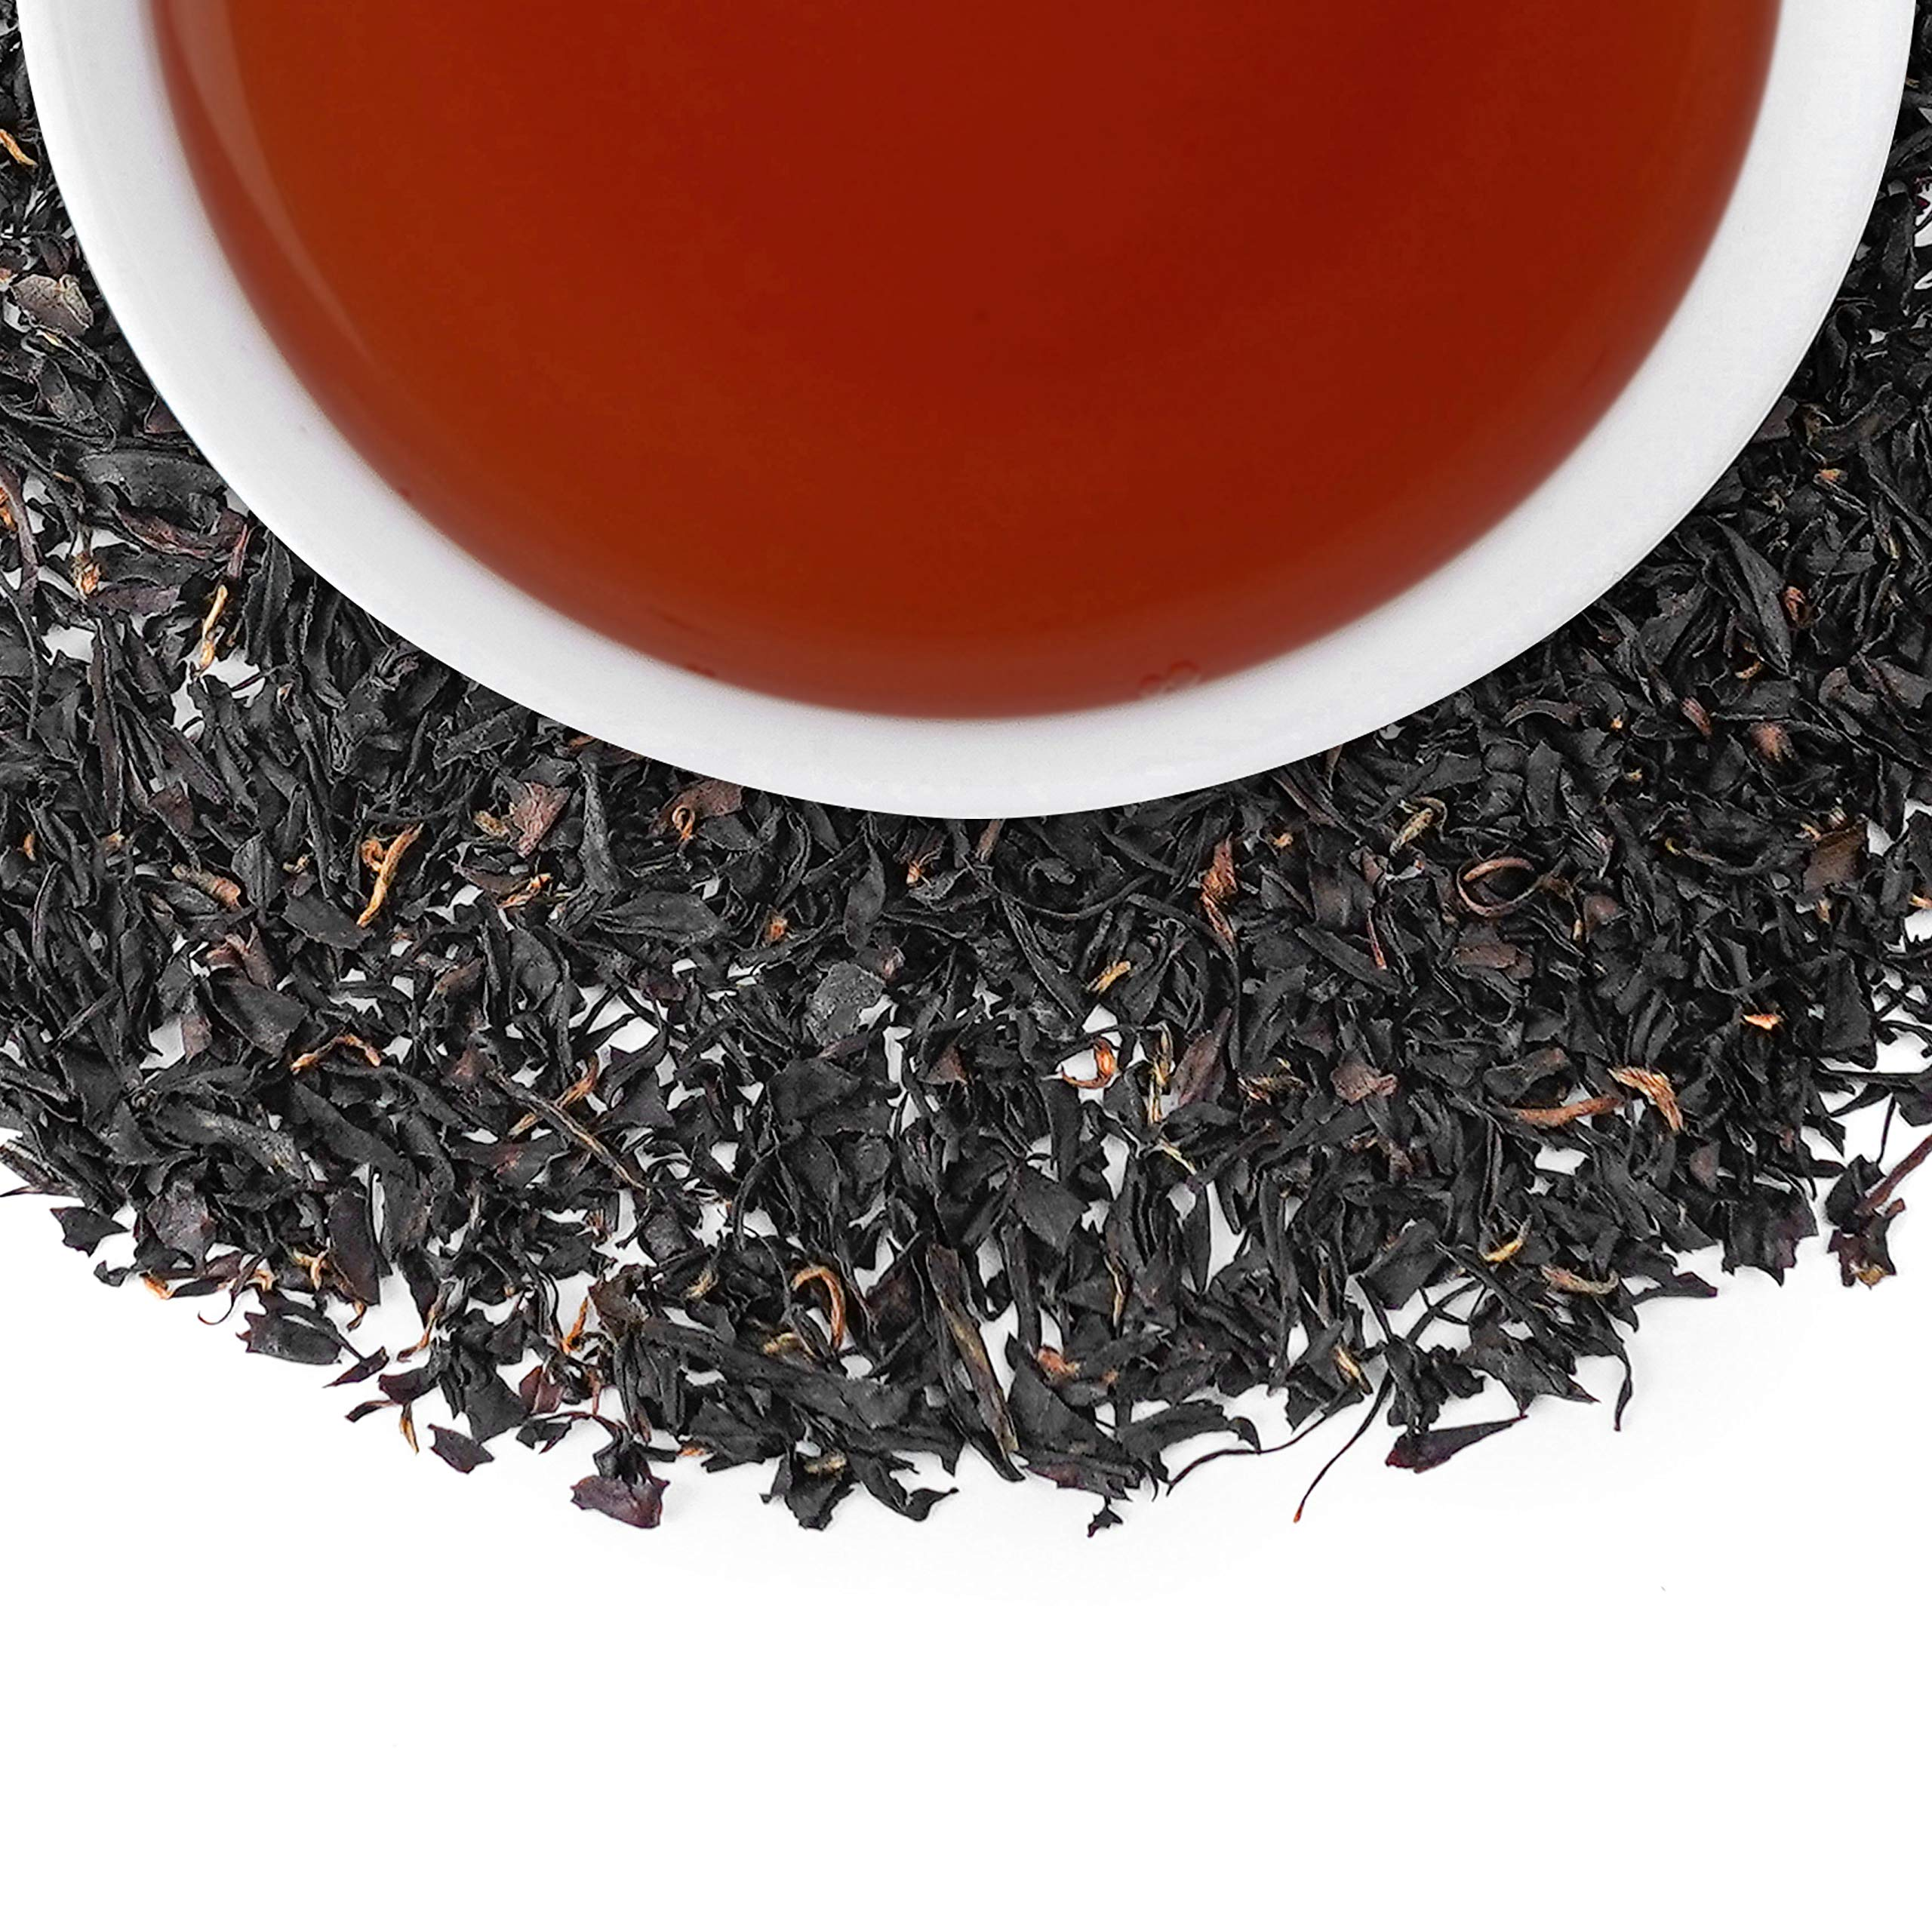 Taimei Teatime, Black Tea 100 count (7.07oz) | Soft & Sweet Aftertaste | First Flush Picked & Packed |Broken Black Tea FBOP Grade | Shipped Directly by Air Chinese Black Tea Bag